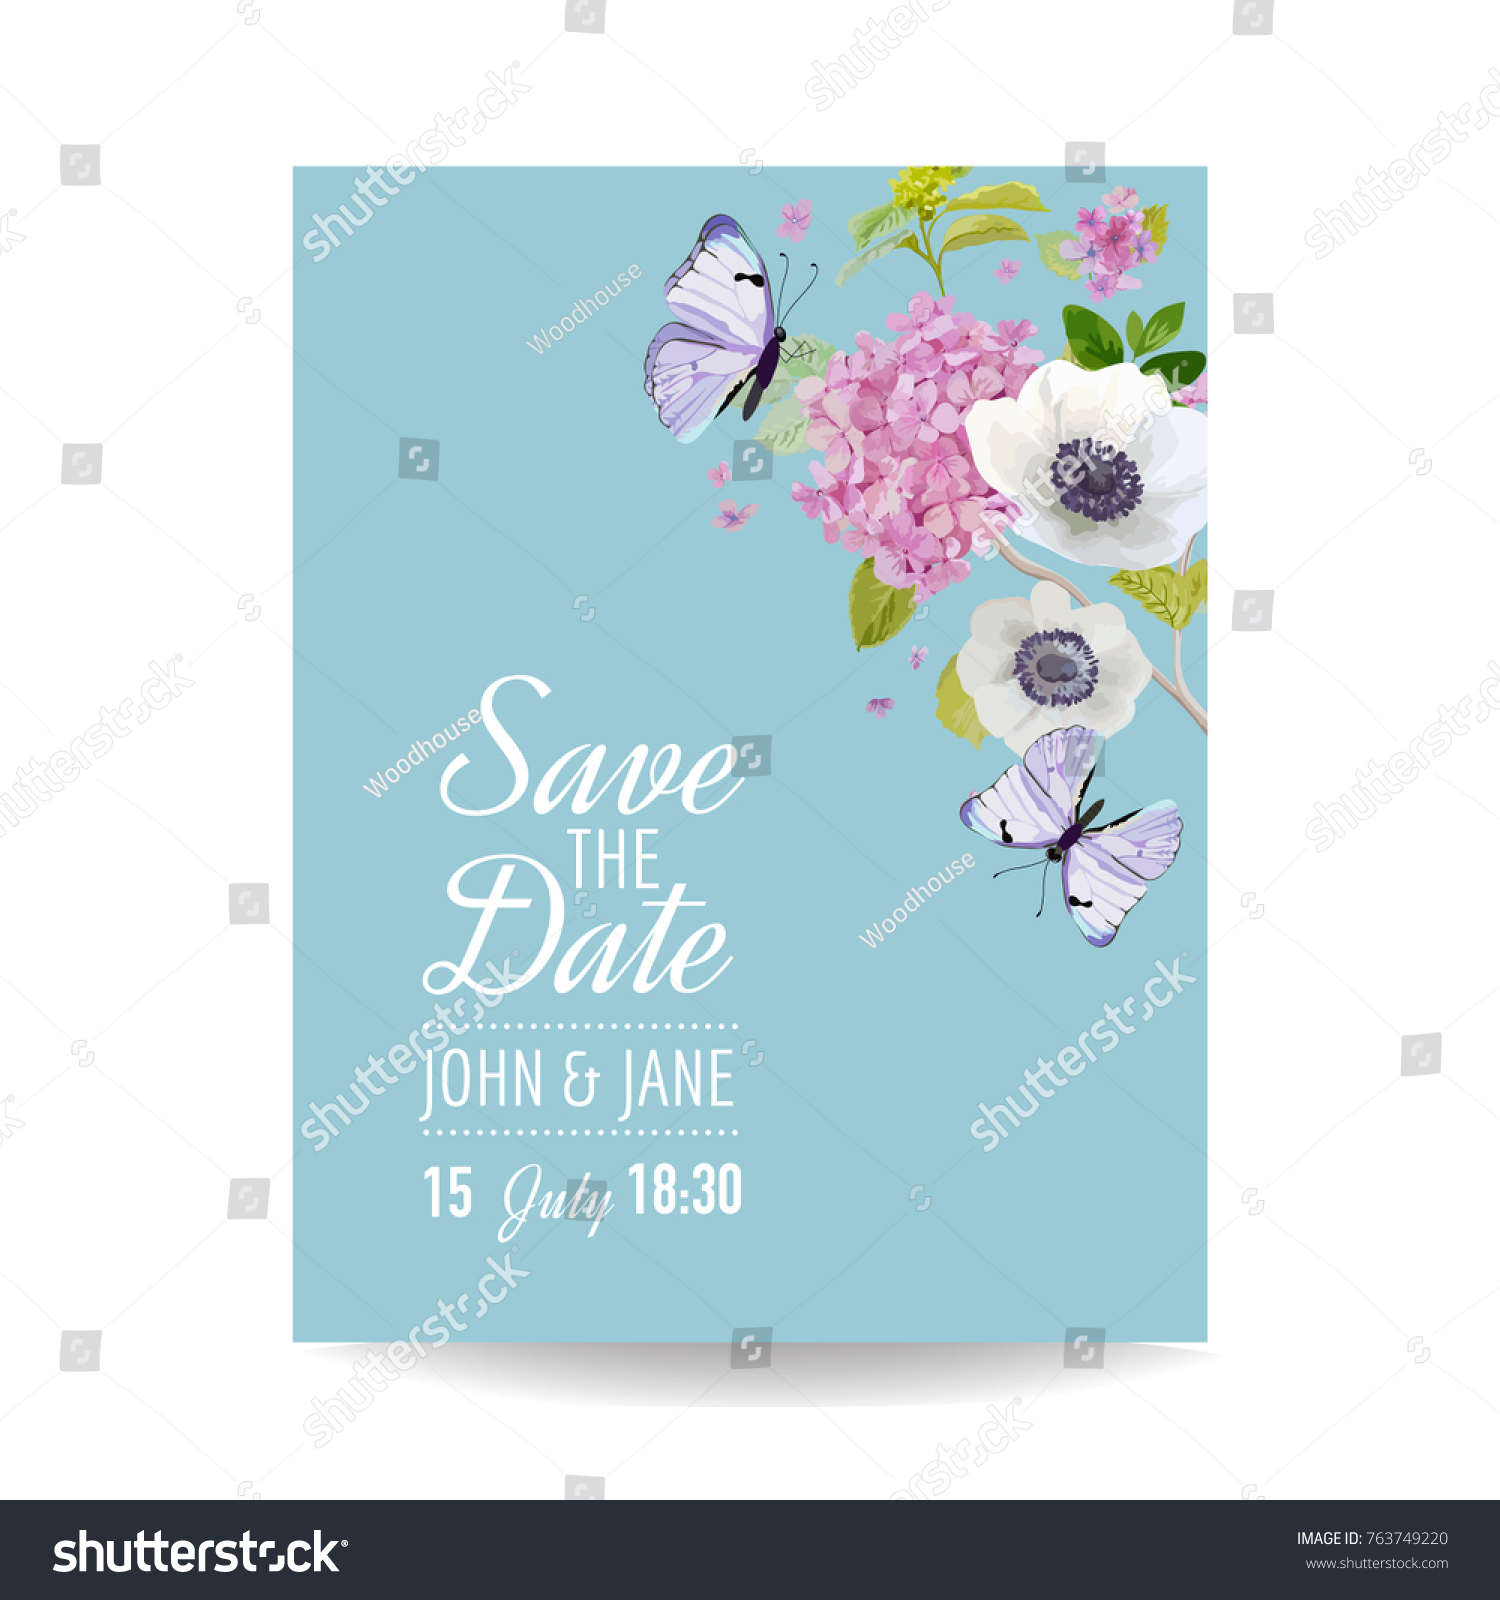 Save Date Card Wedding Invitation Template Stock Vector 763749220 ...